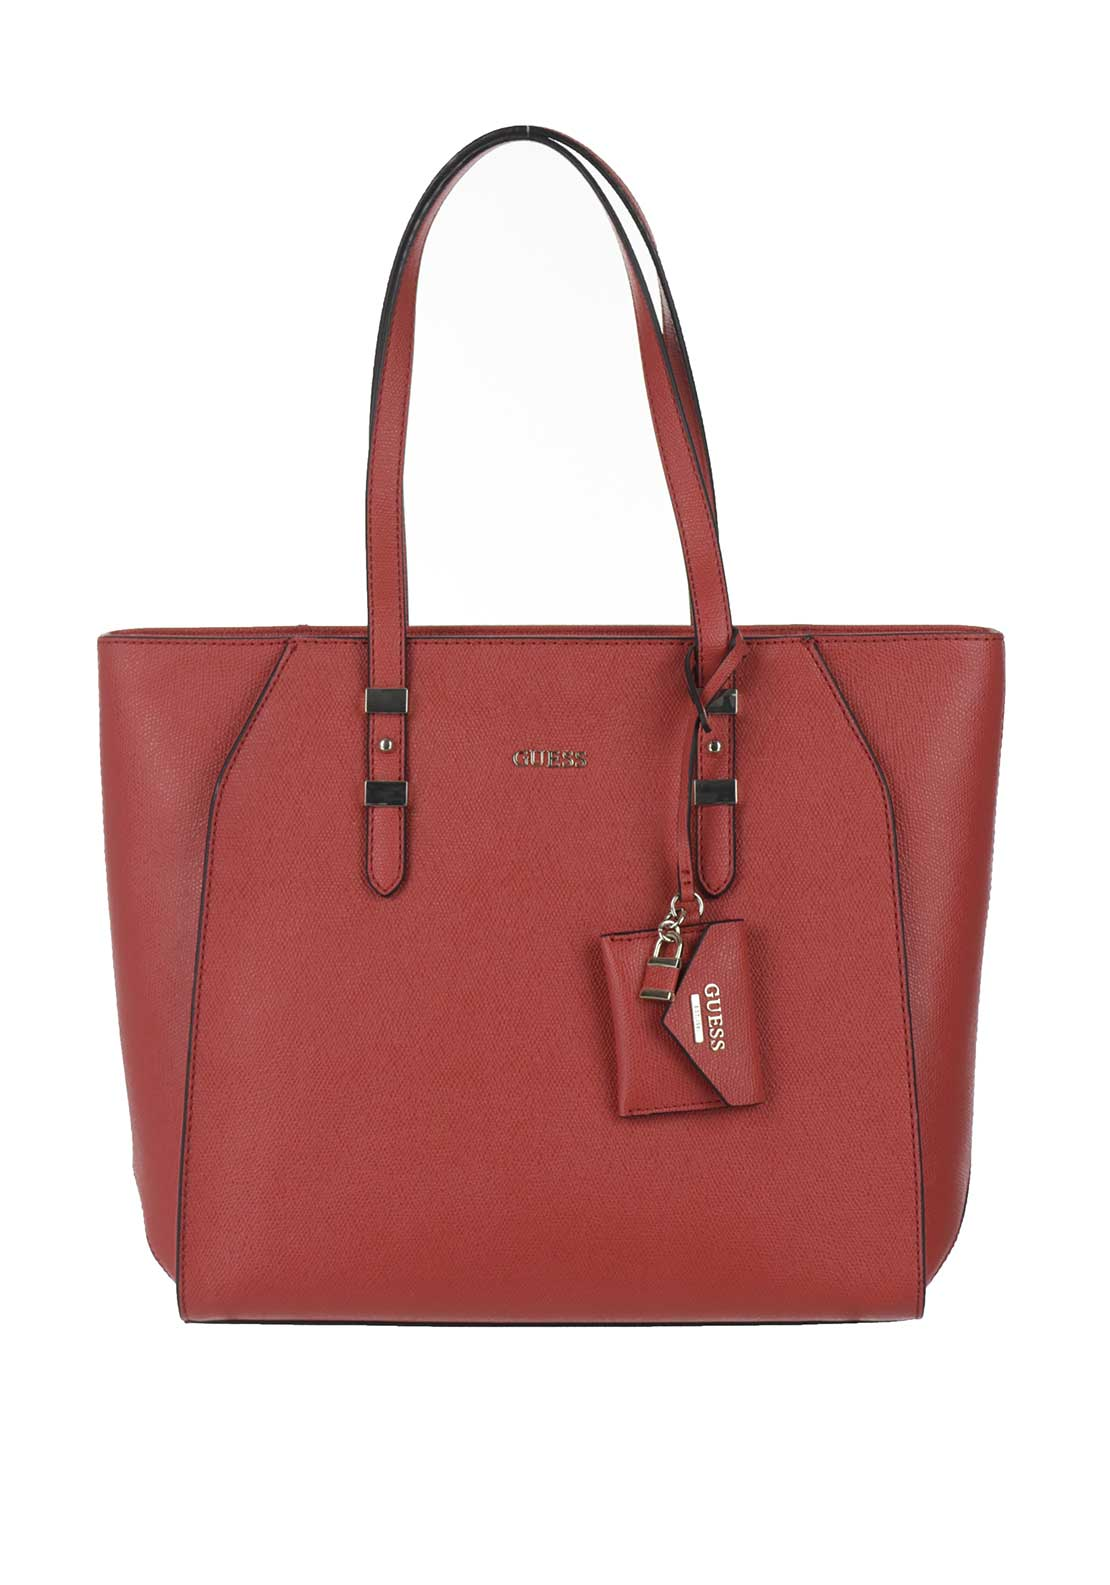 Guess Gia Shopper Tote Bag, Spice